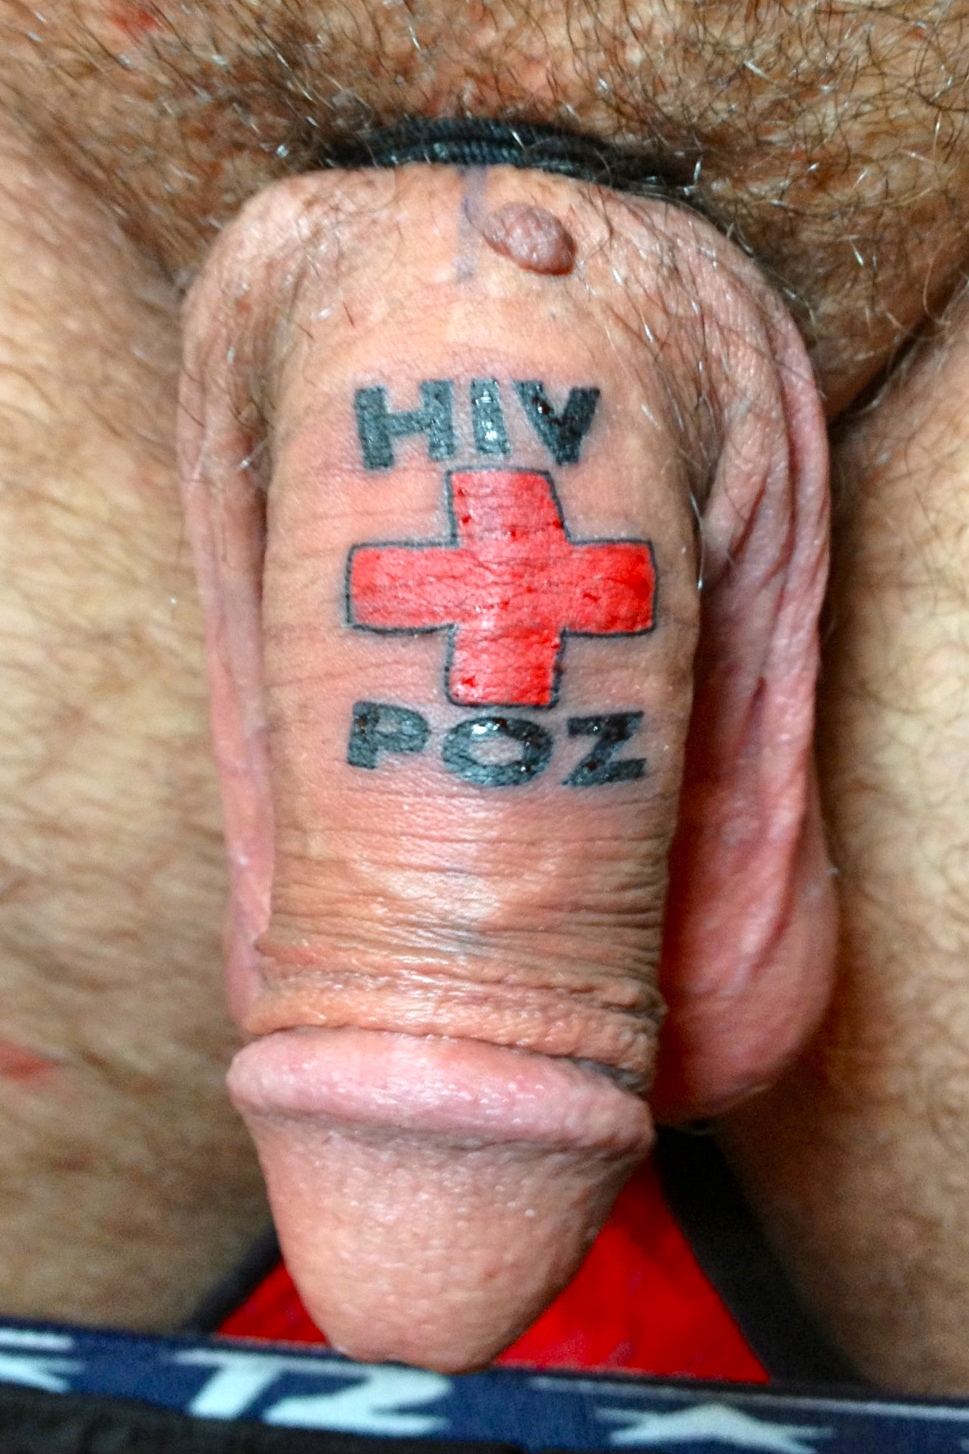 Aids on a penis